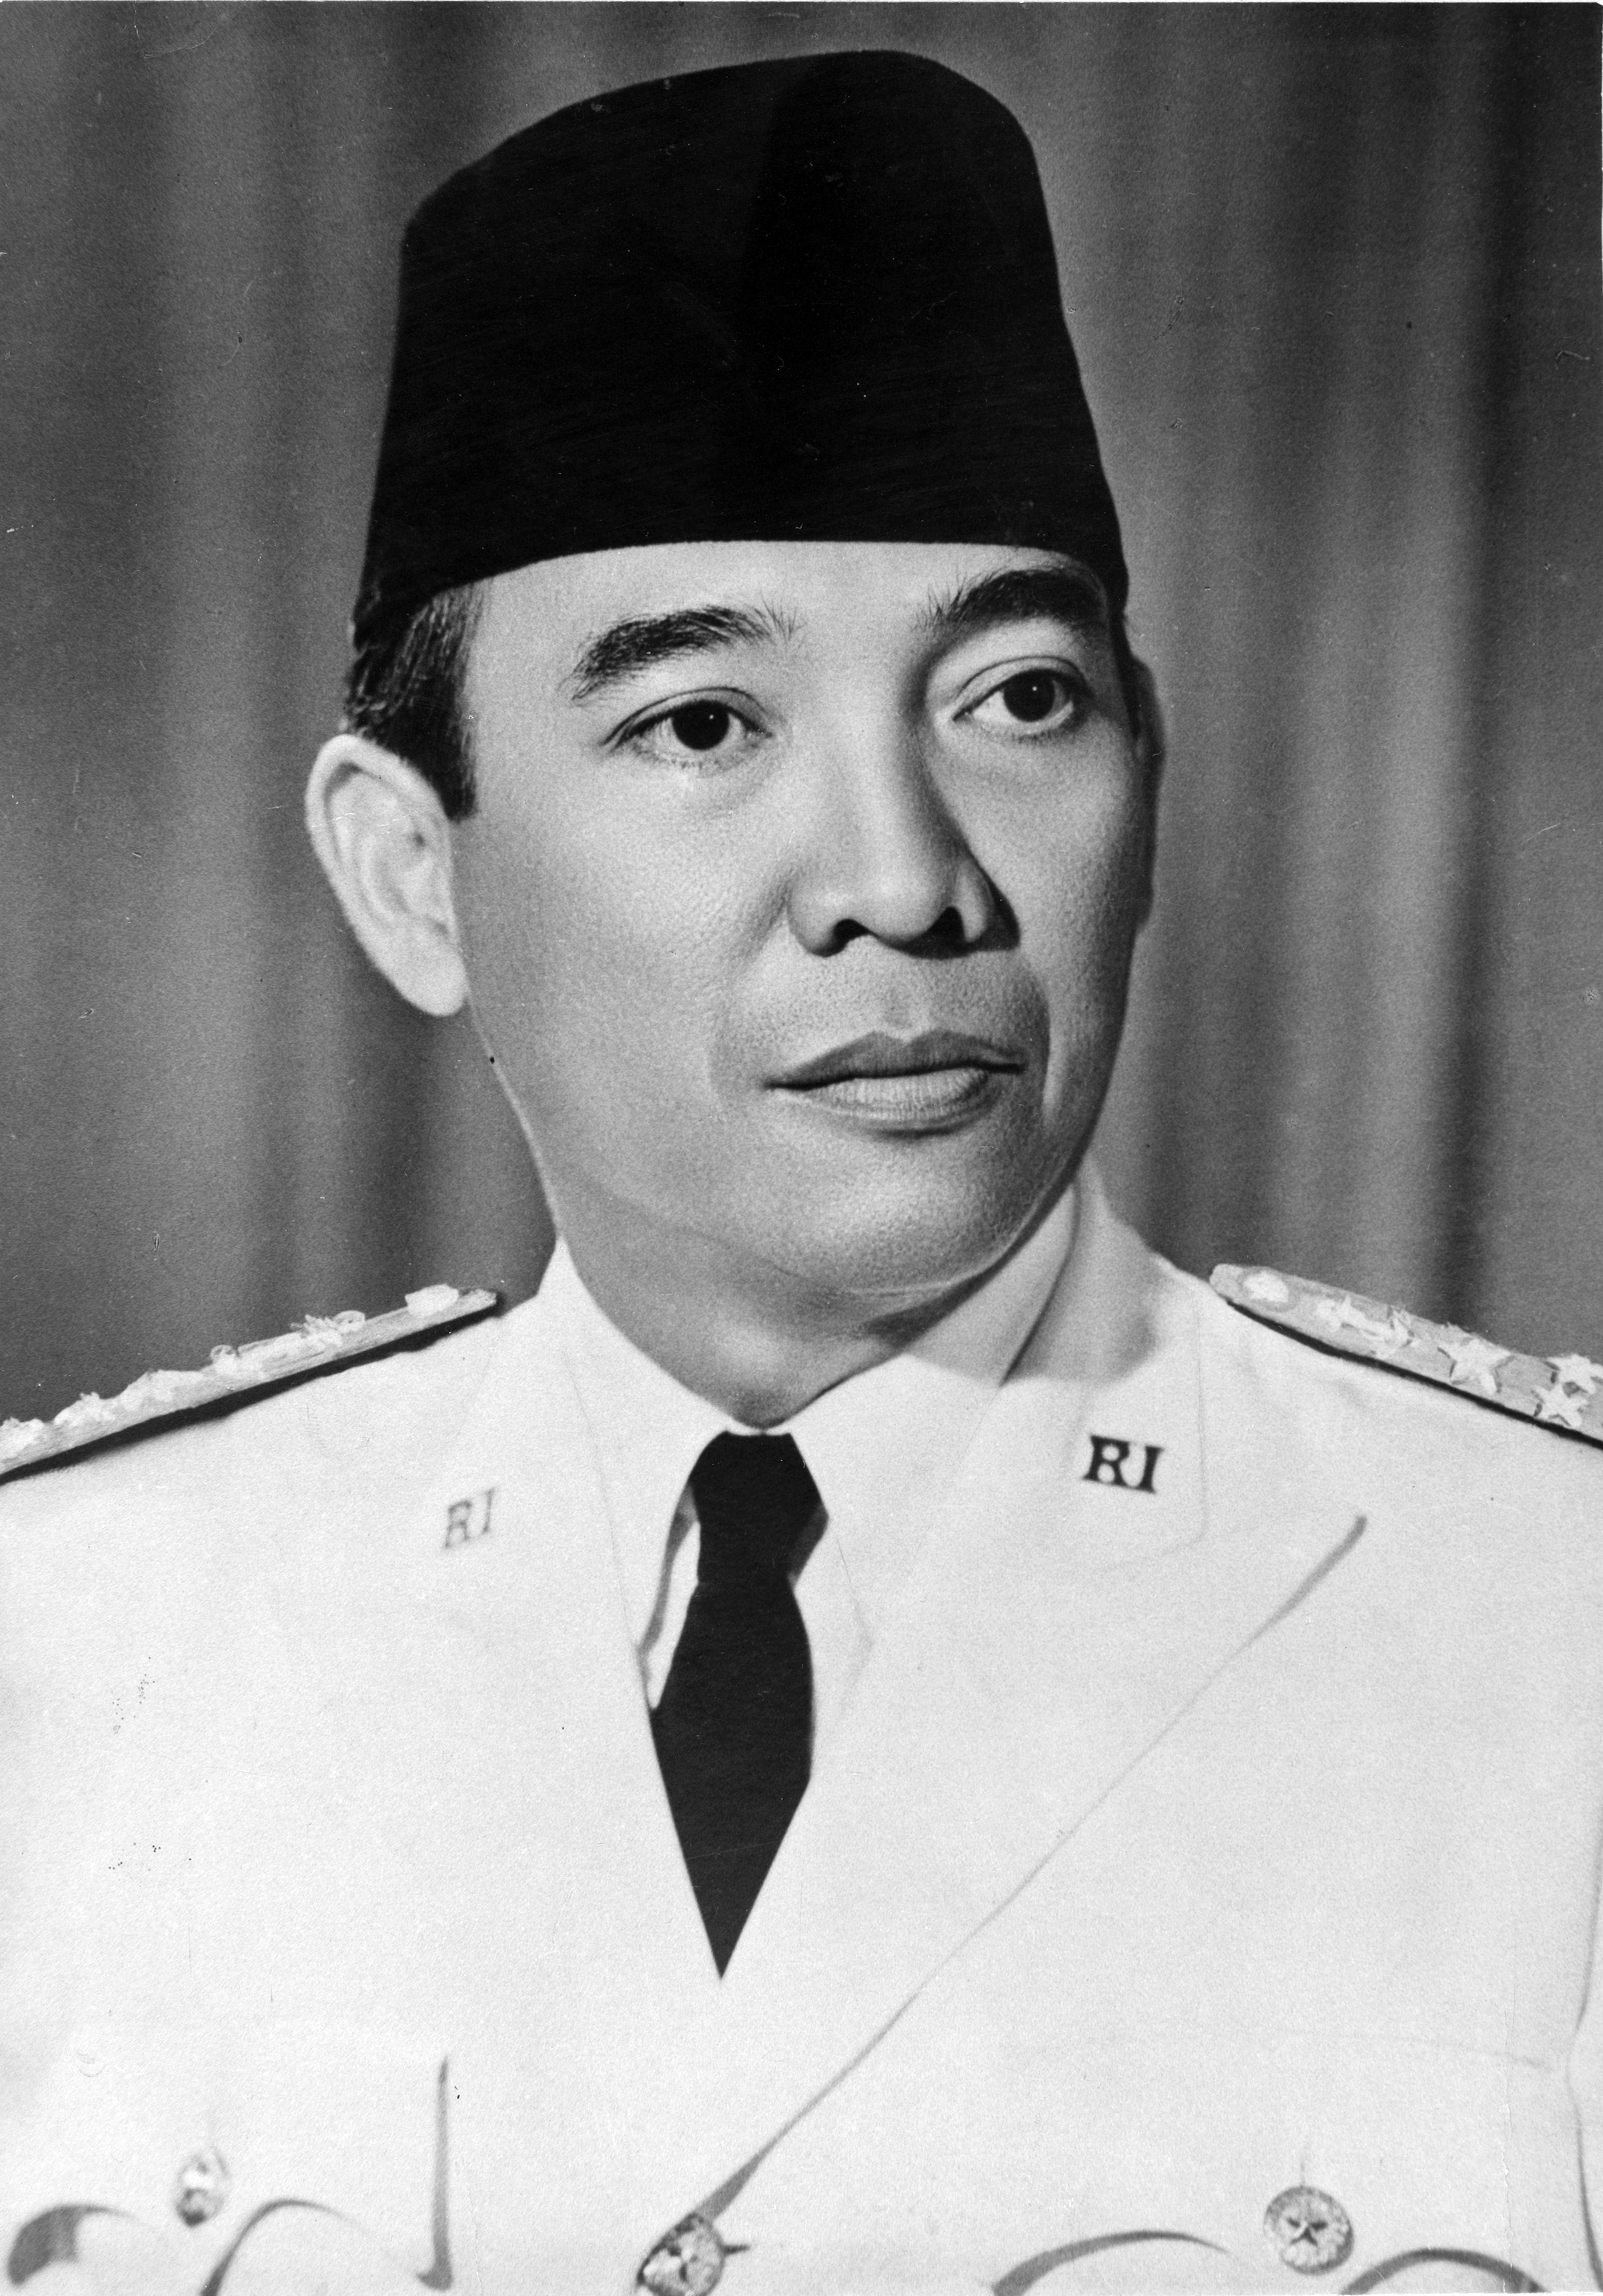 https://upload.wikimedia.org/wikipedia/commons/0/01/Presiden_Sukarno.jpg